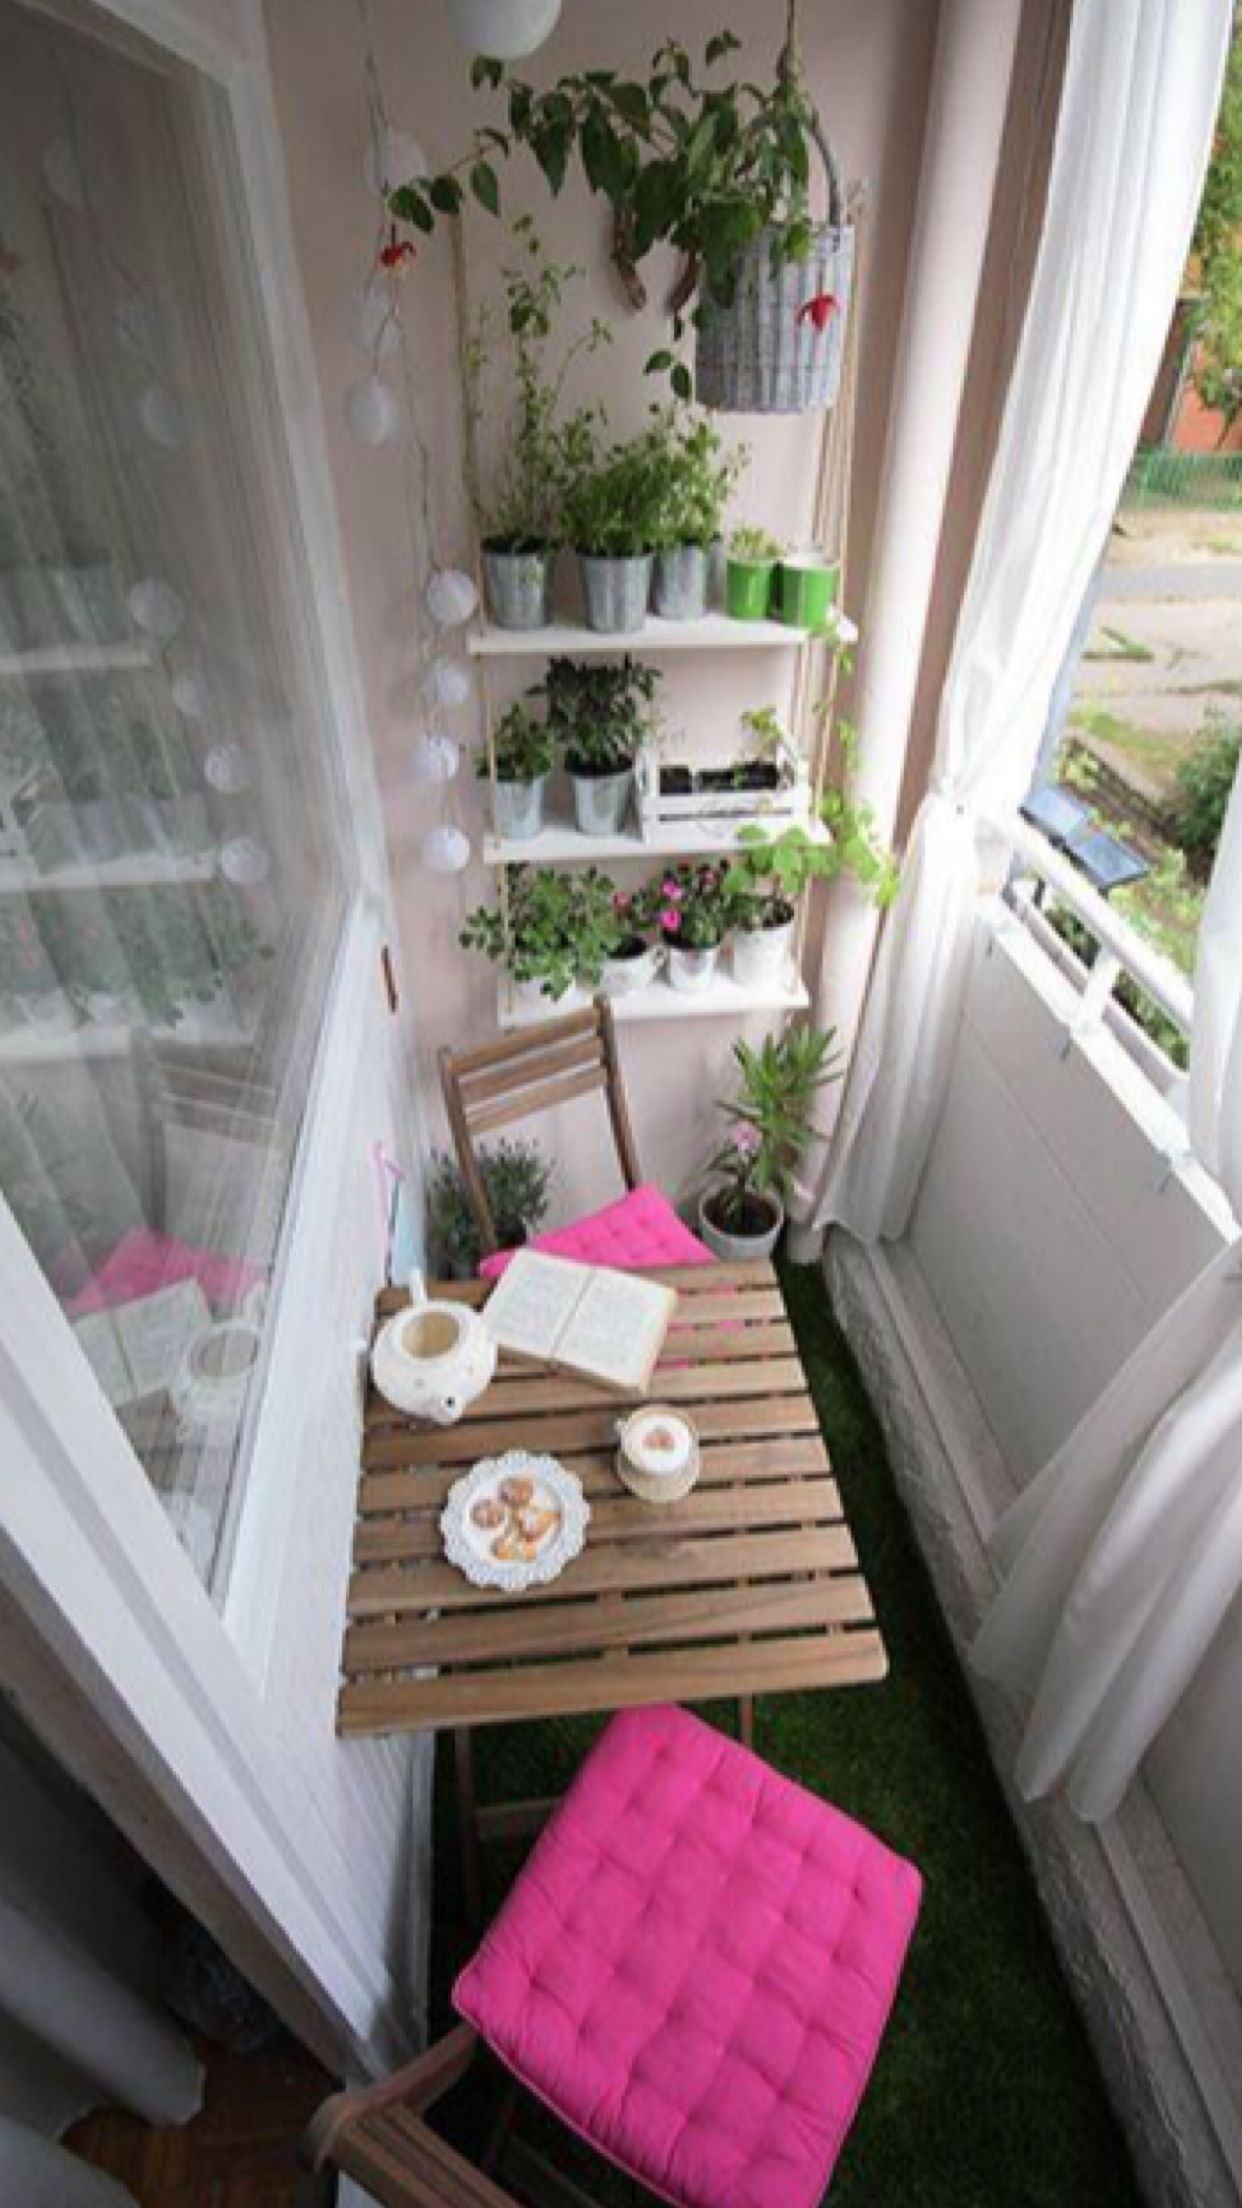 Cute Apartment Balcony: So Cute And Fun With The Pop Of Pink